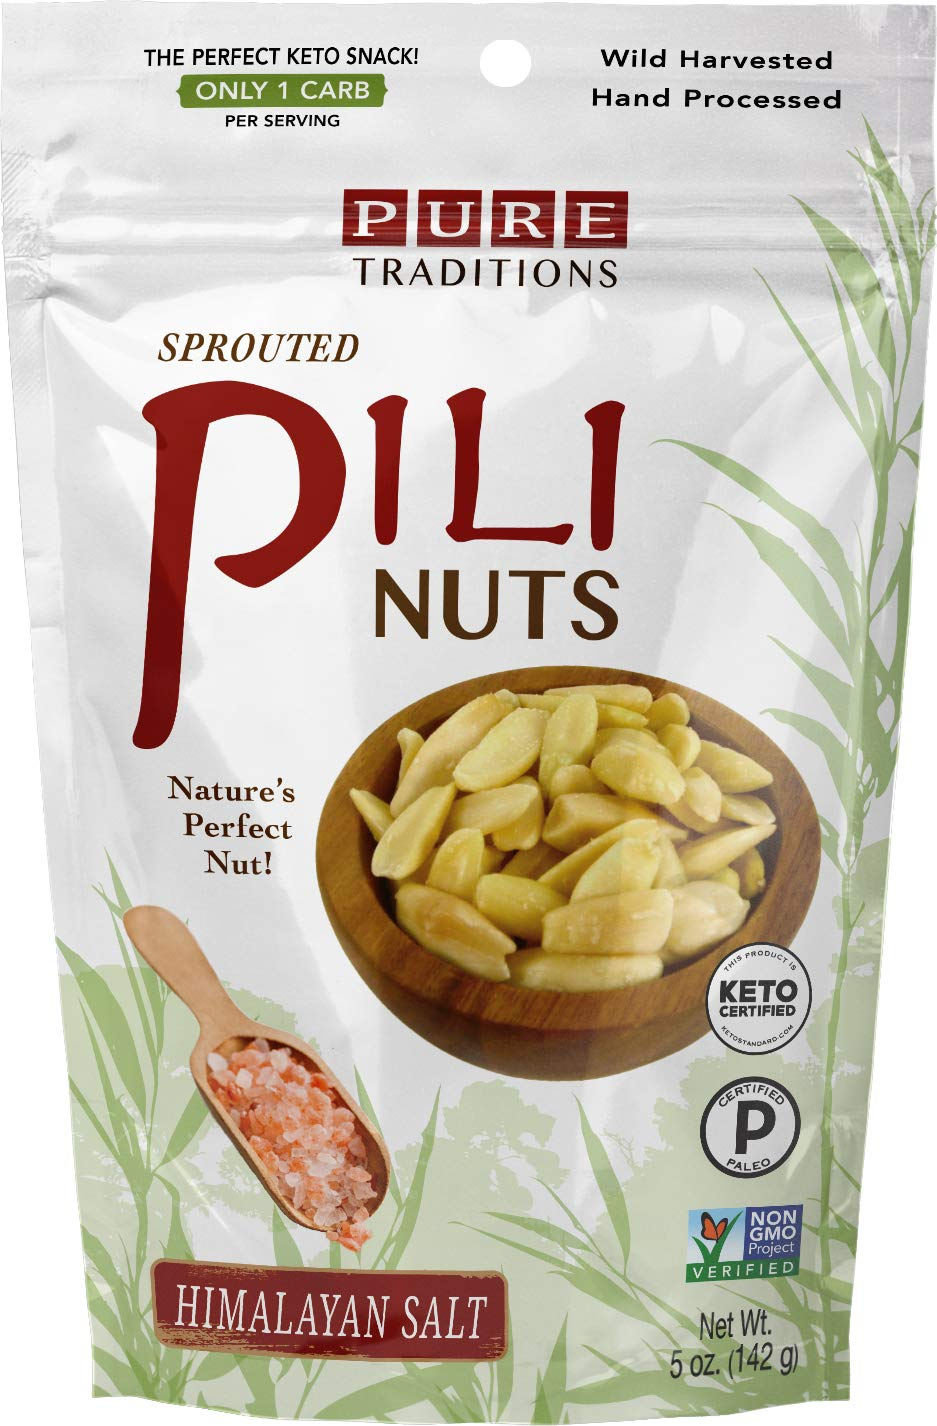 Wild Sprouted Pili Nuts, (5 oz Bag) with Himalayan Salt and Organic Coconut MCT Oil, Perfect Keto Friendly Snack, Vegan, Low Carb Energy, No Sugar Added, Ketogenic Fat Superfood, Gluten/Soy/Dairy Free